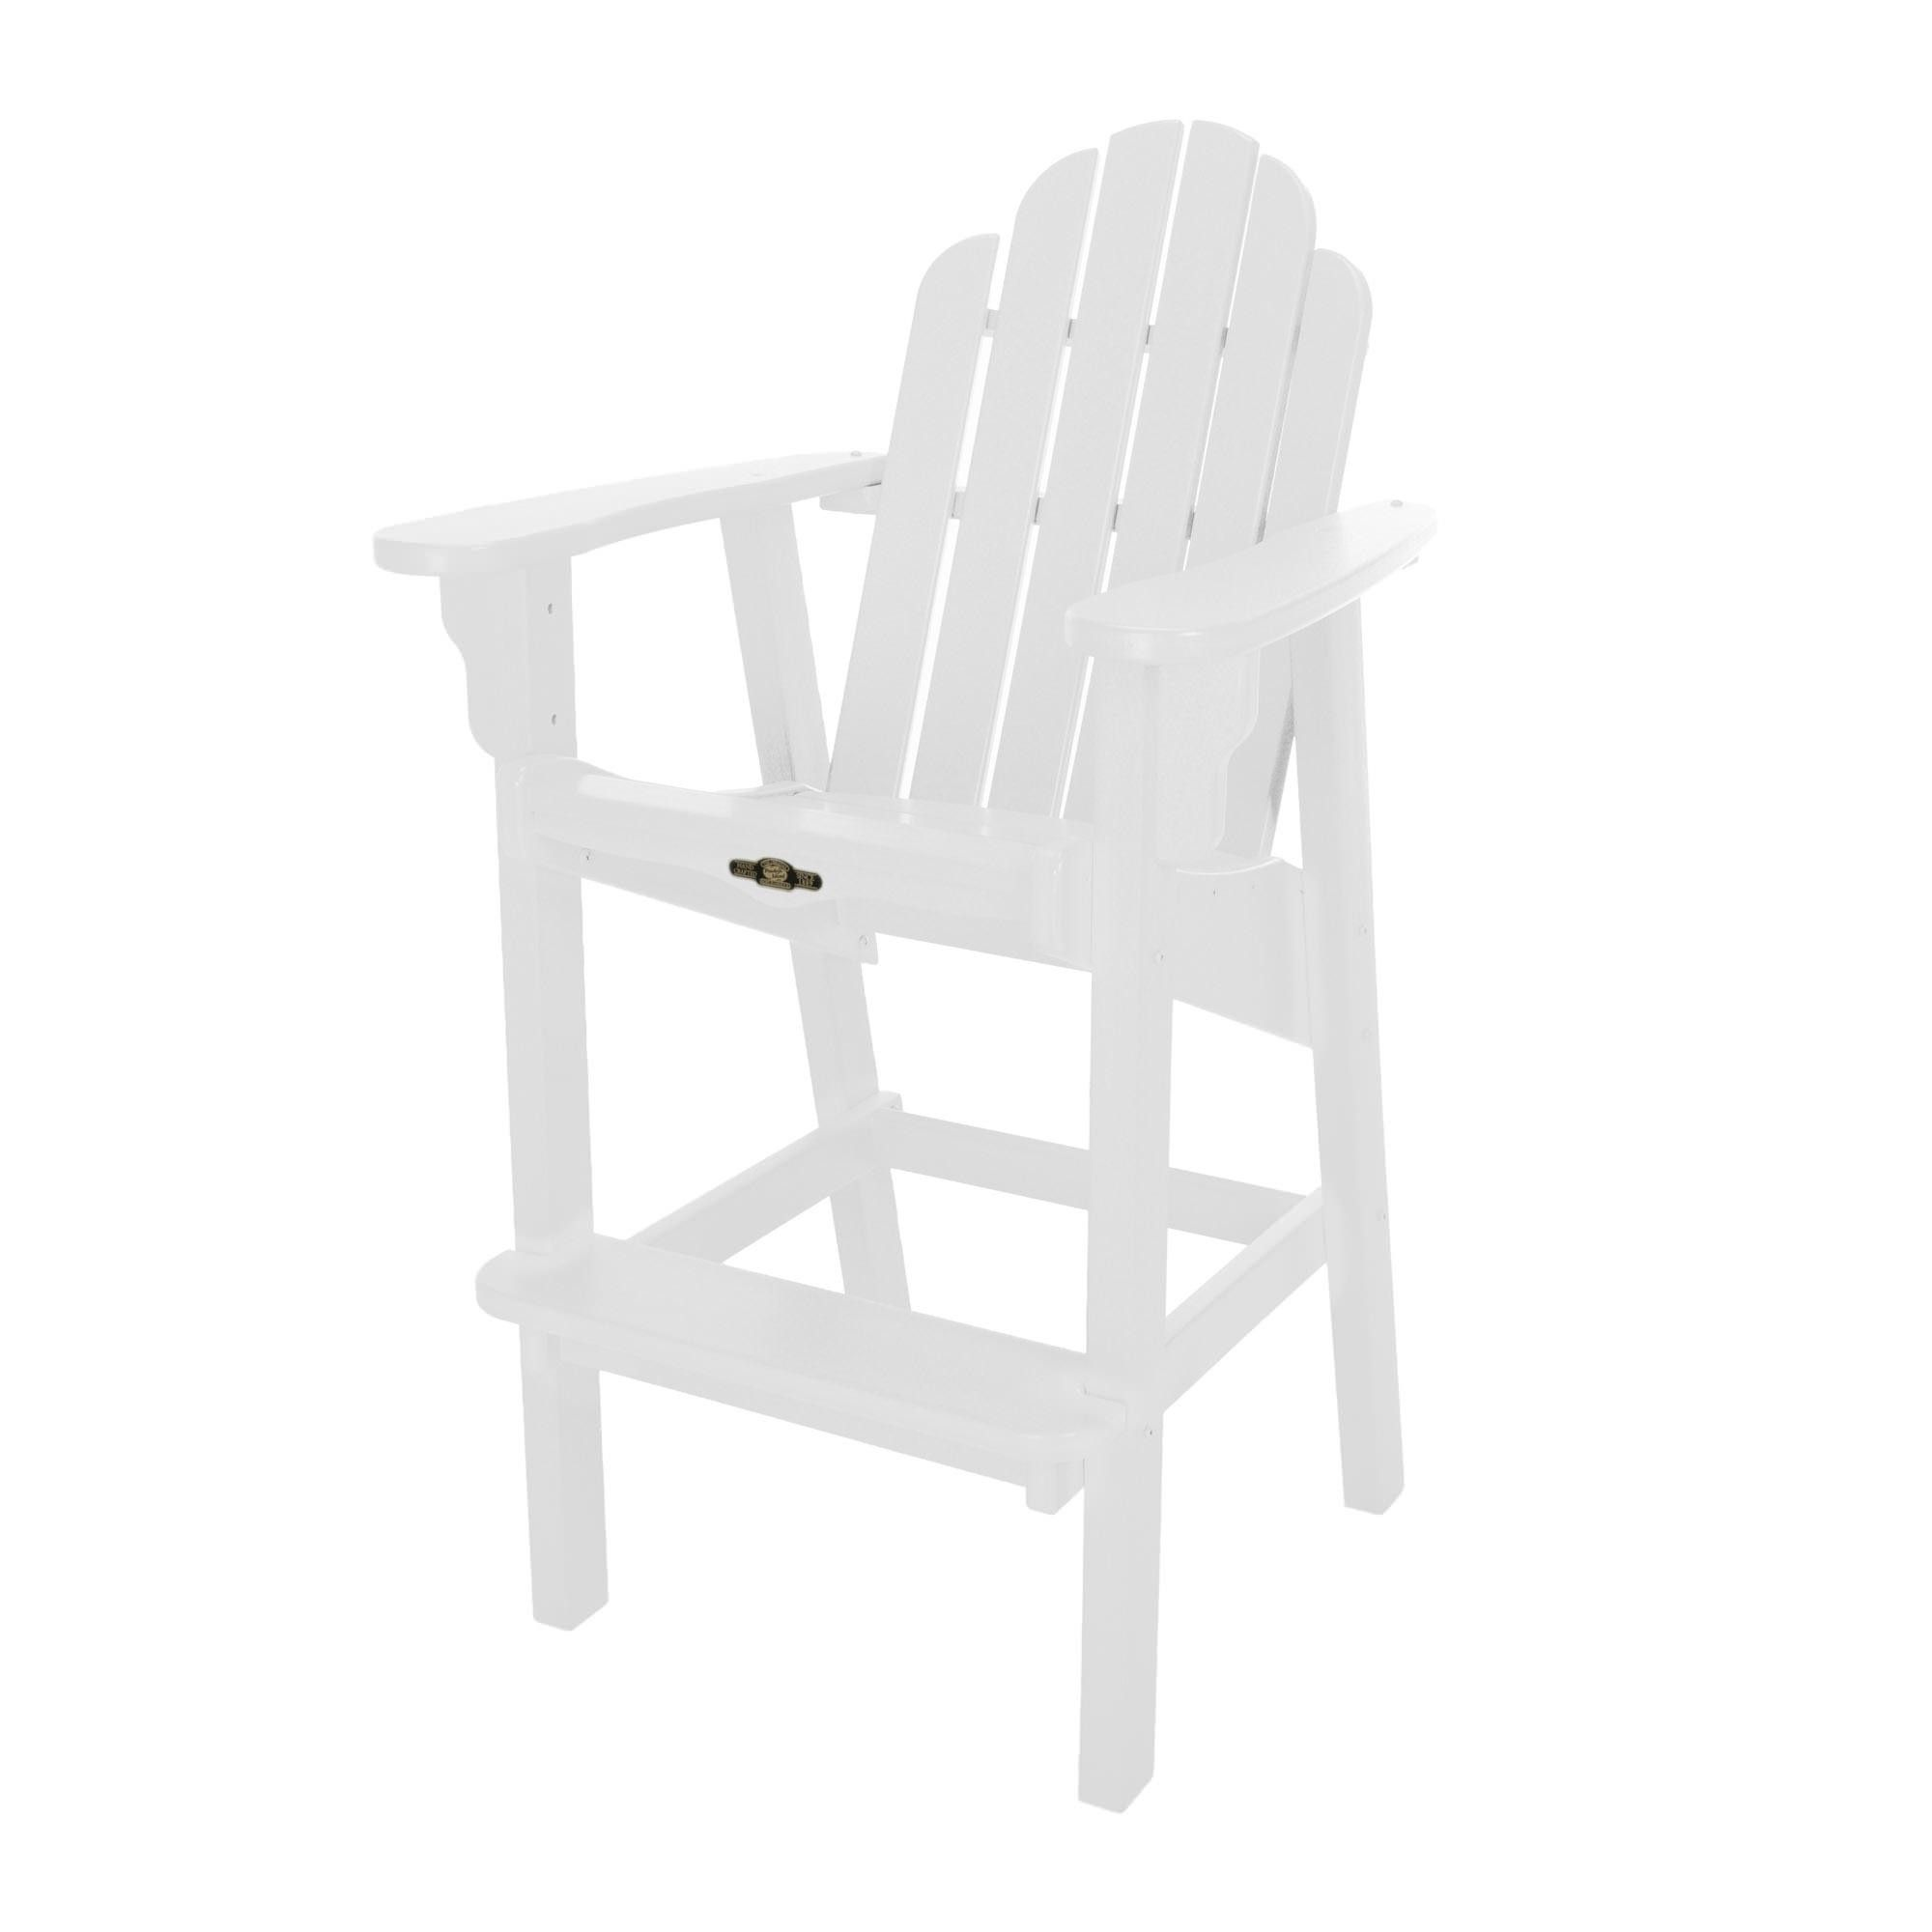 Pawleys Island Durawood Essentials High Dining Chair